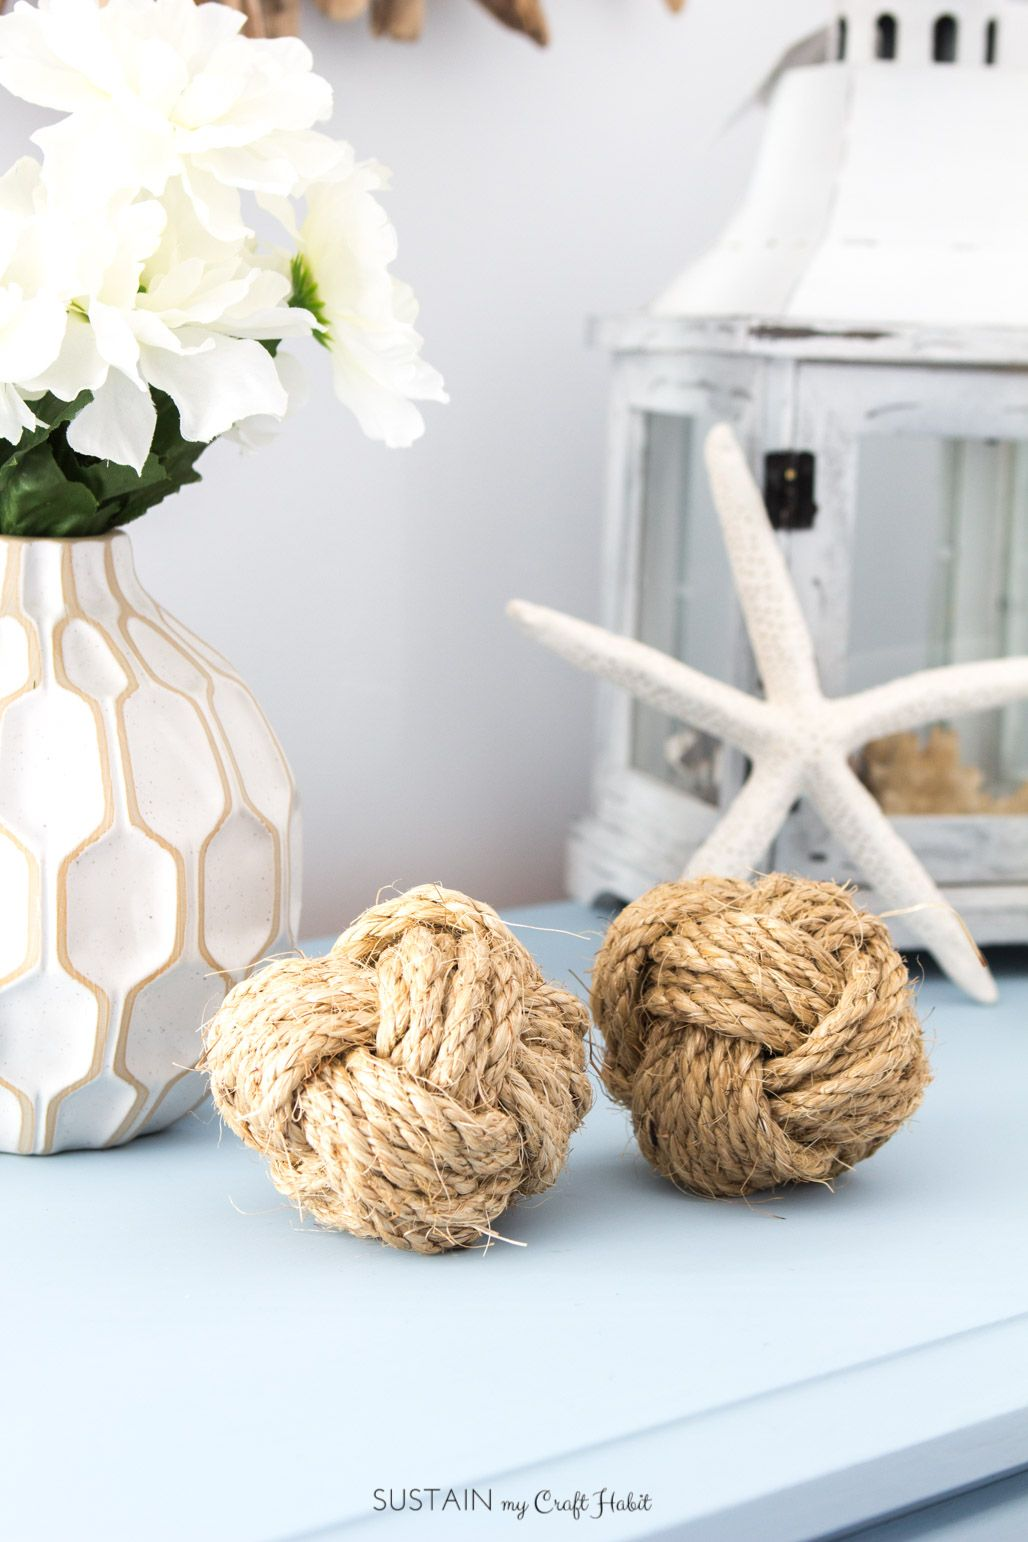 Decorative Rope Balls How To Make A Monkey Fist Video Tutorial  Recipe  Coastal